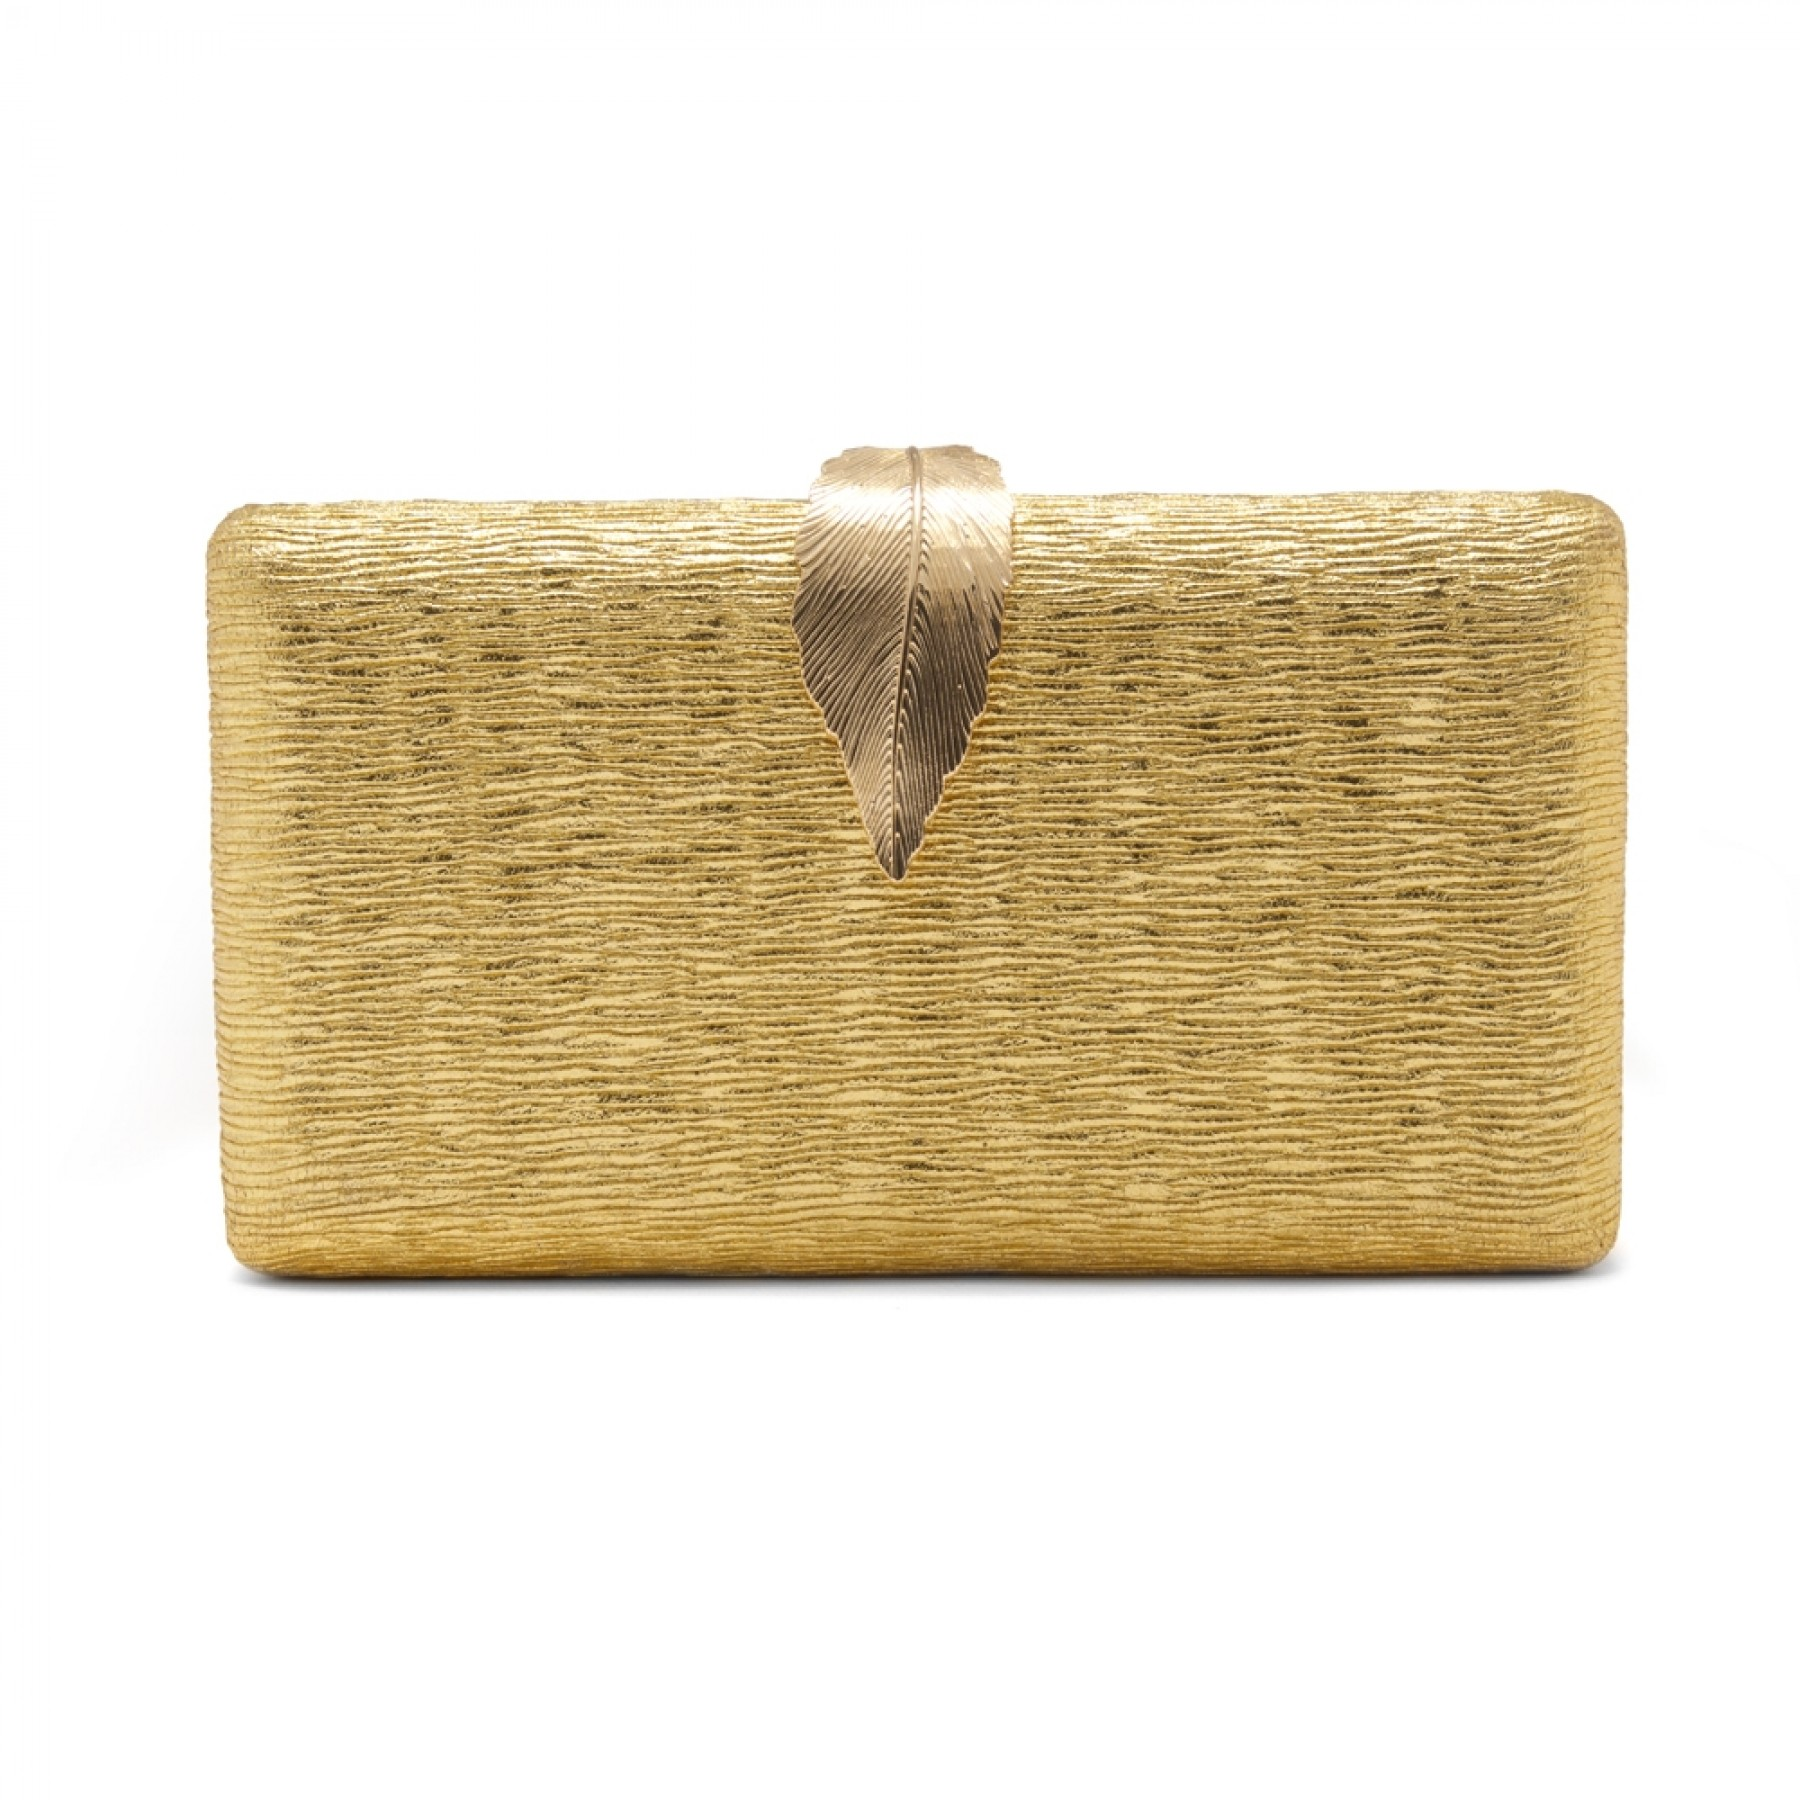 SZY-E1091- Sparkling Envelope Evening Clutch Purse (Gold)